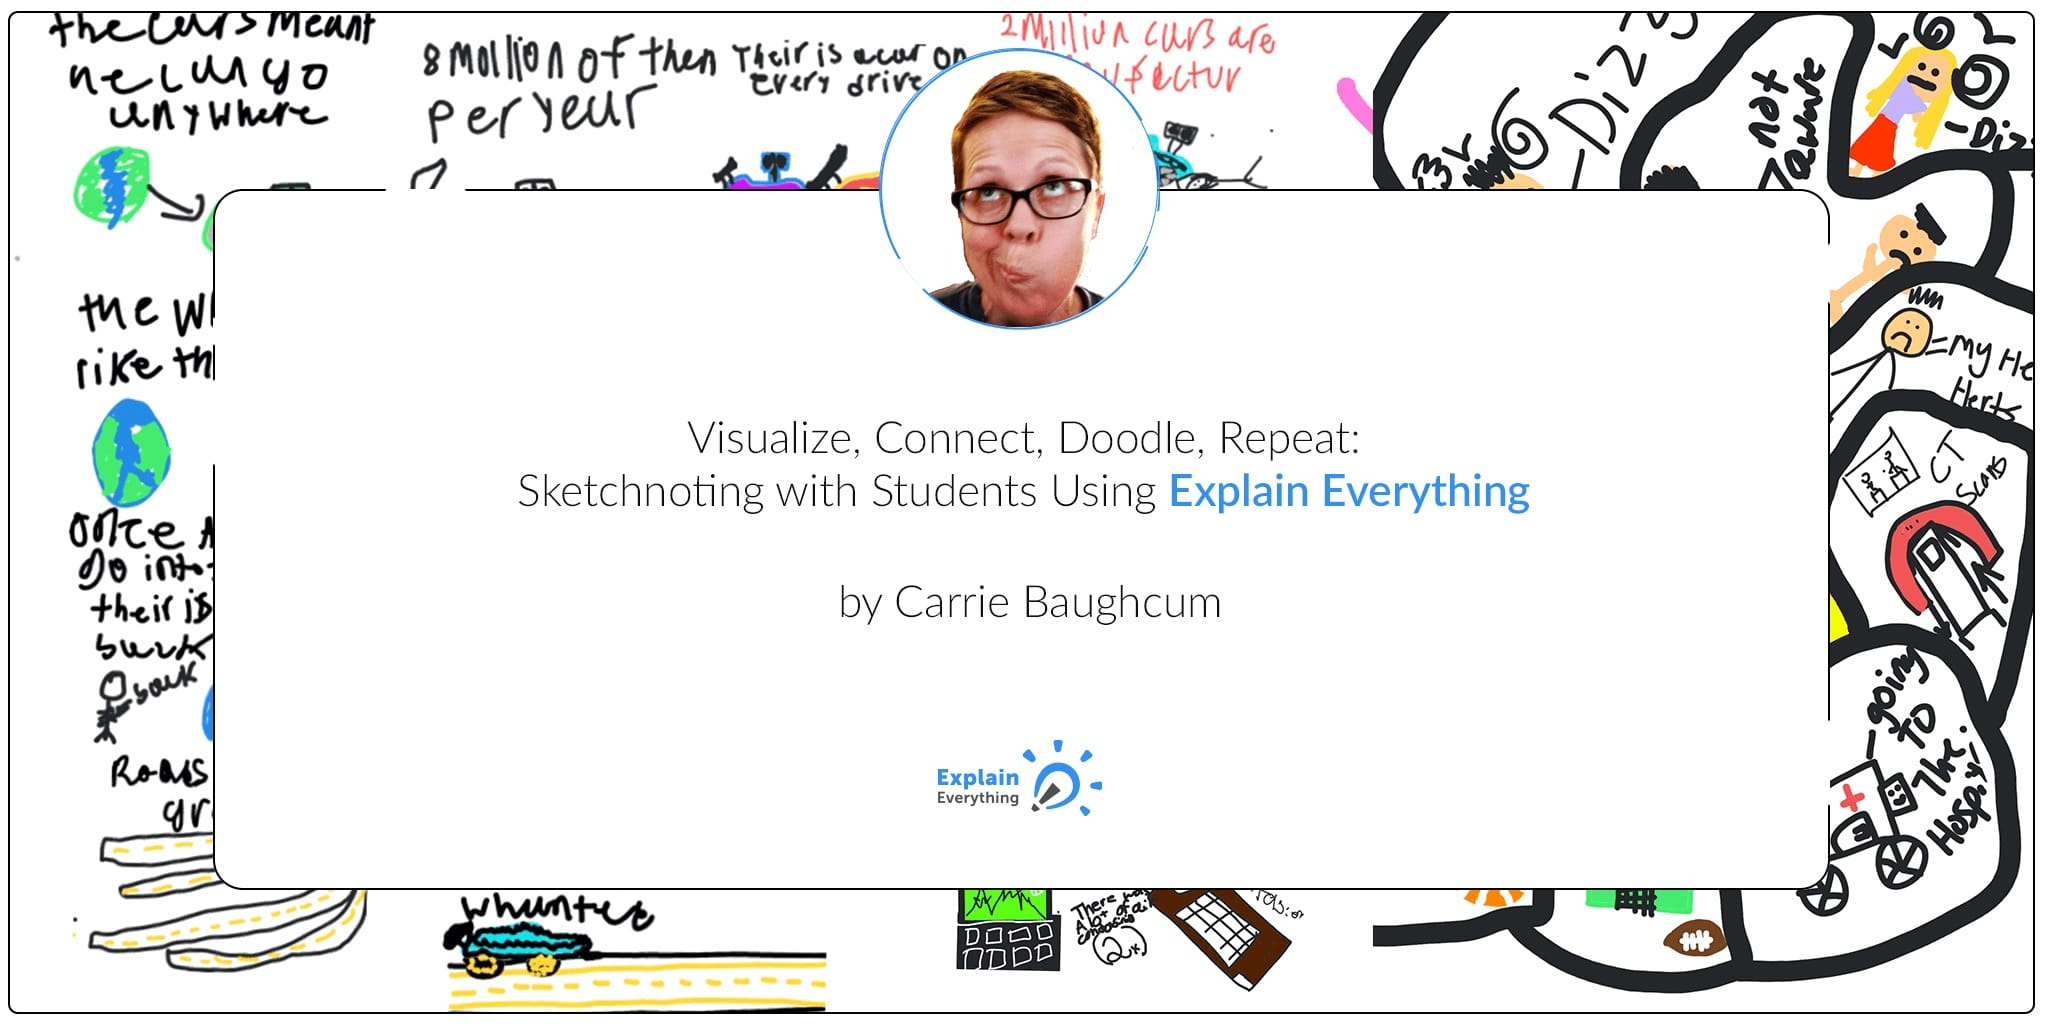 Visualize, connect, doodle, and repeat with explain everything